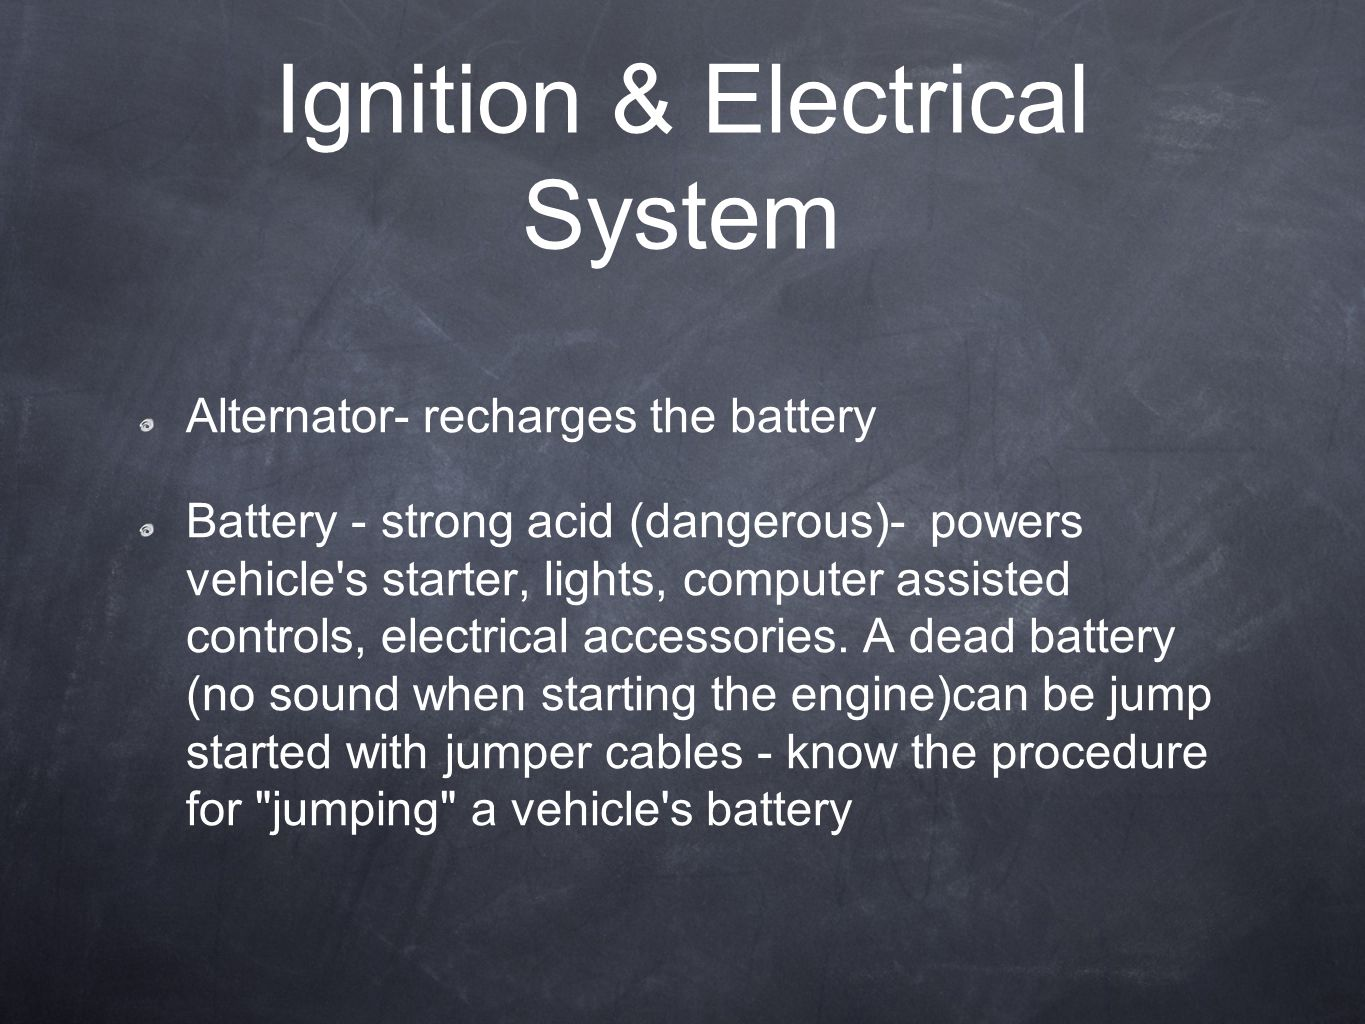 Ignition & Electrical System